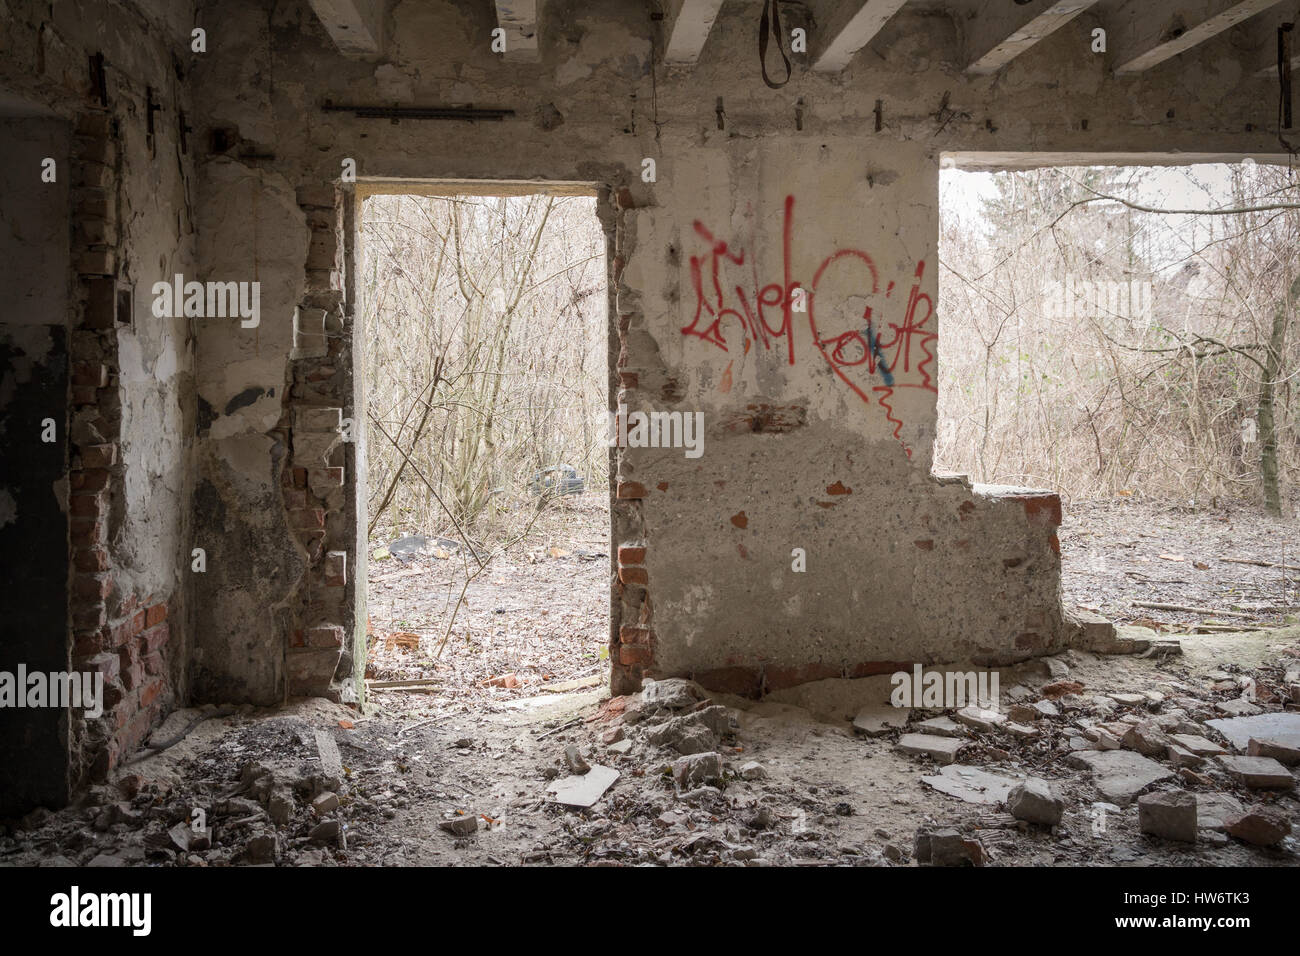 creepy house interior - Stock Image